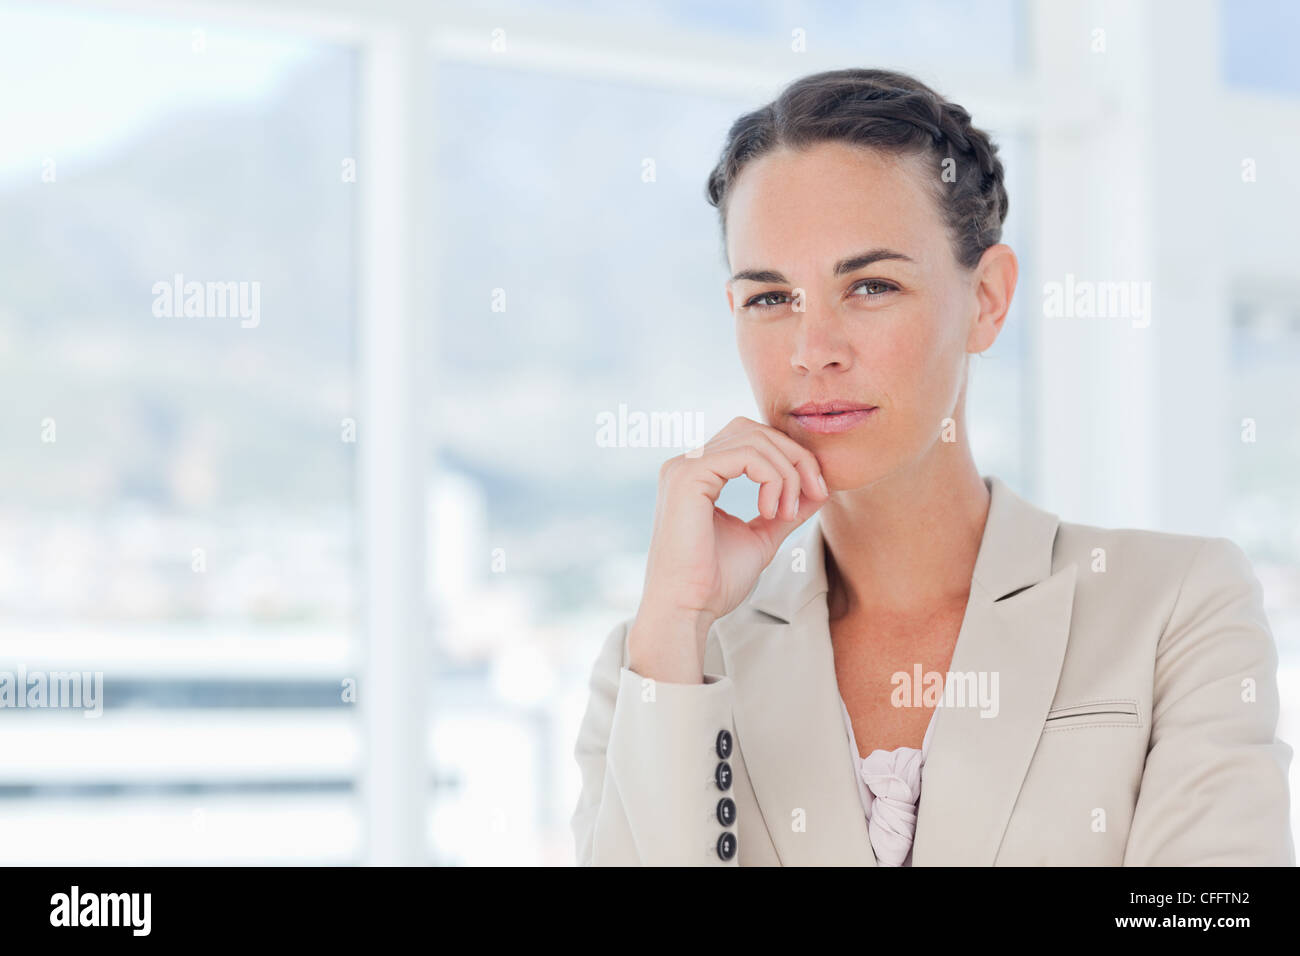 Saleswoman in thinkers pose - Stock Image